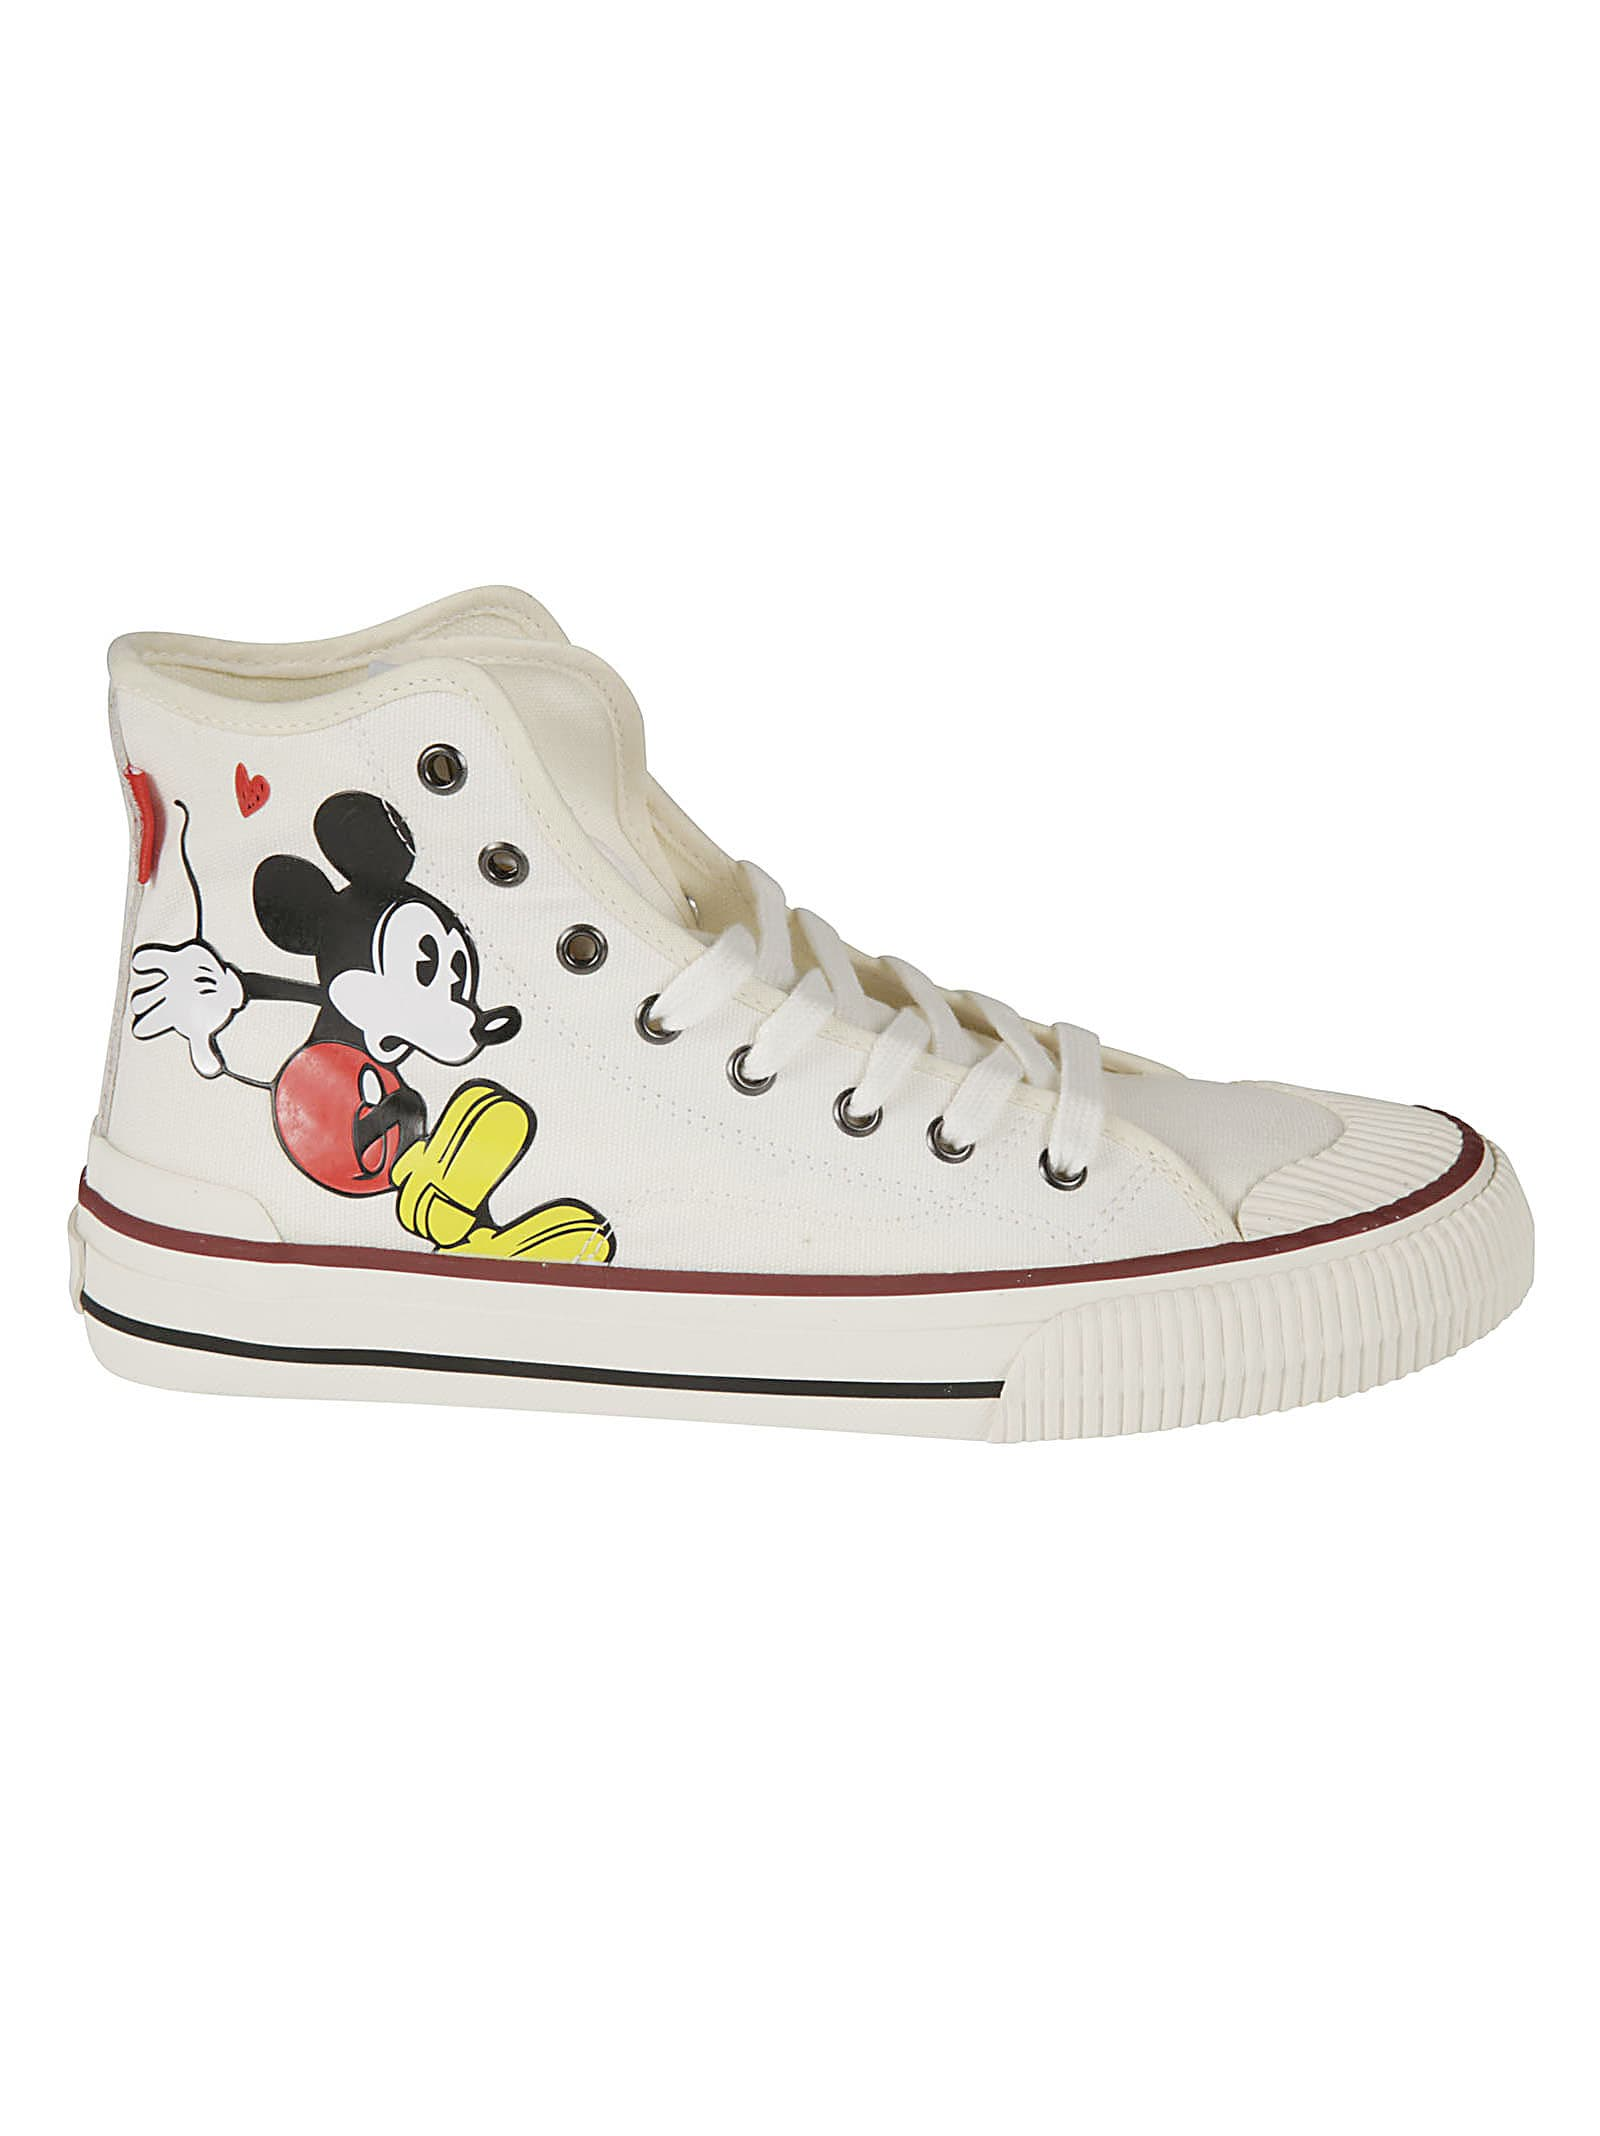 M.O.A. master of arts Mickey Mouse Print Sneakers